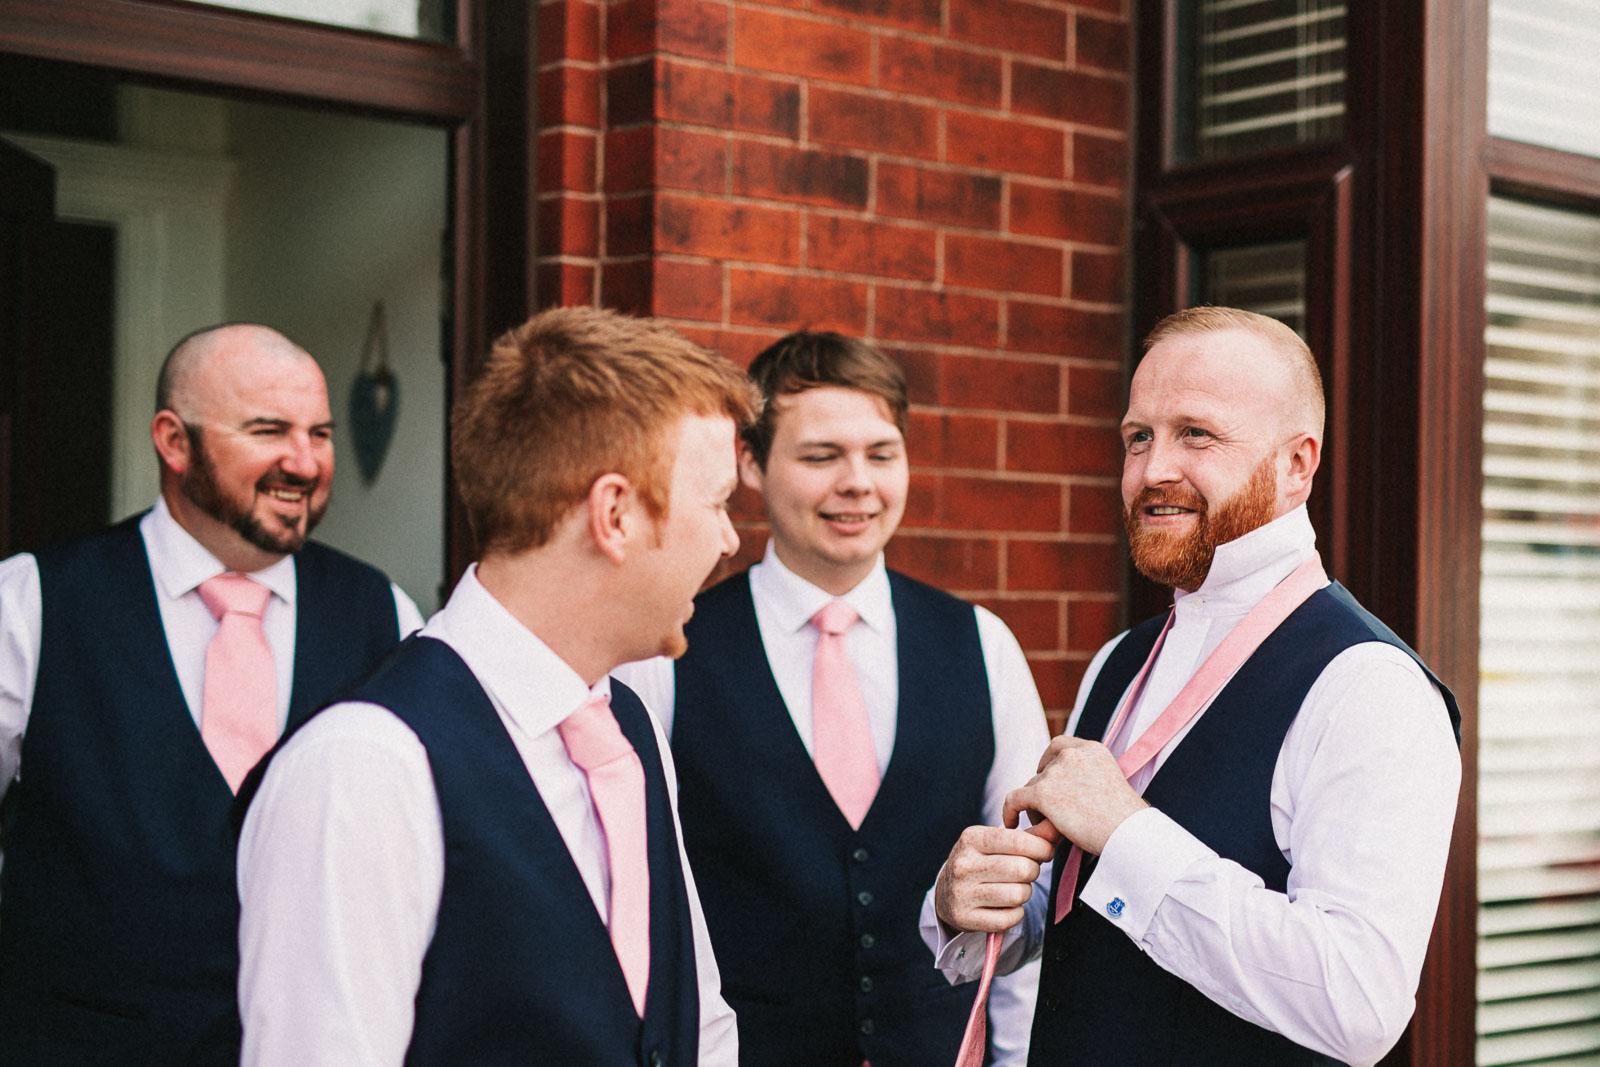 kilhey-court-hotel-wedding-13